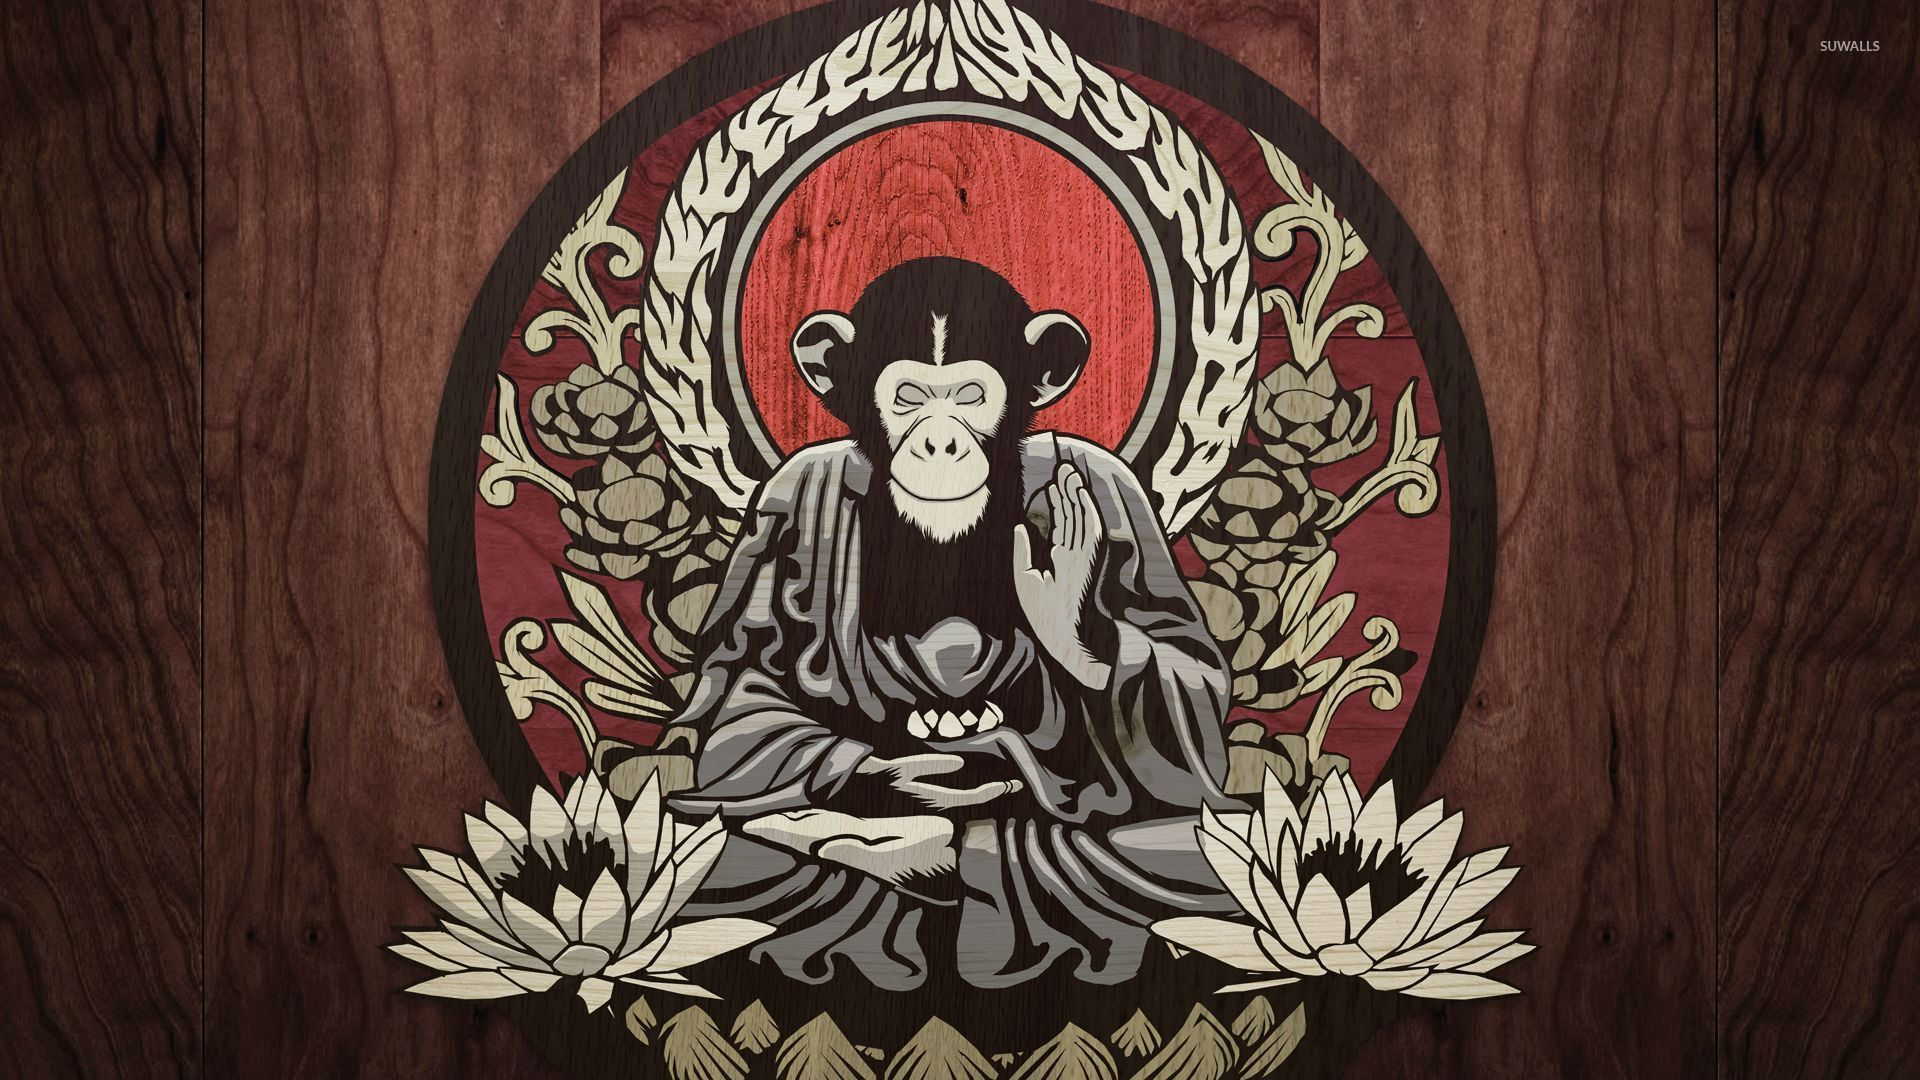 meditating-monkey-26689-1920x1080.jpeg